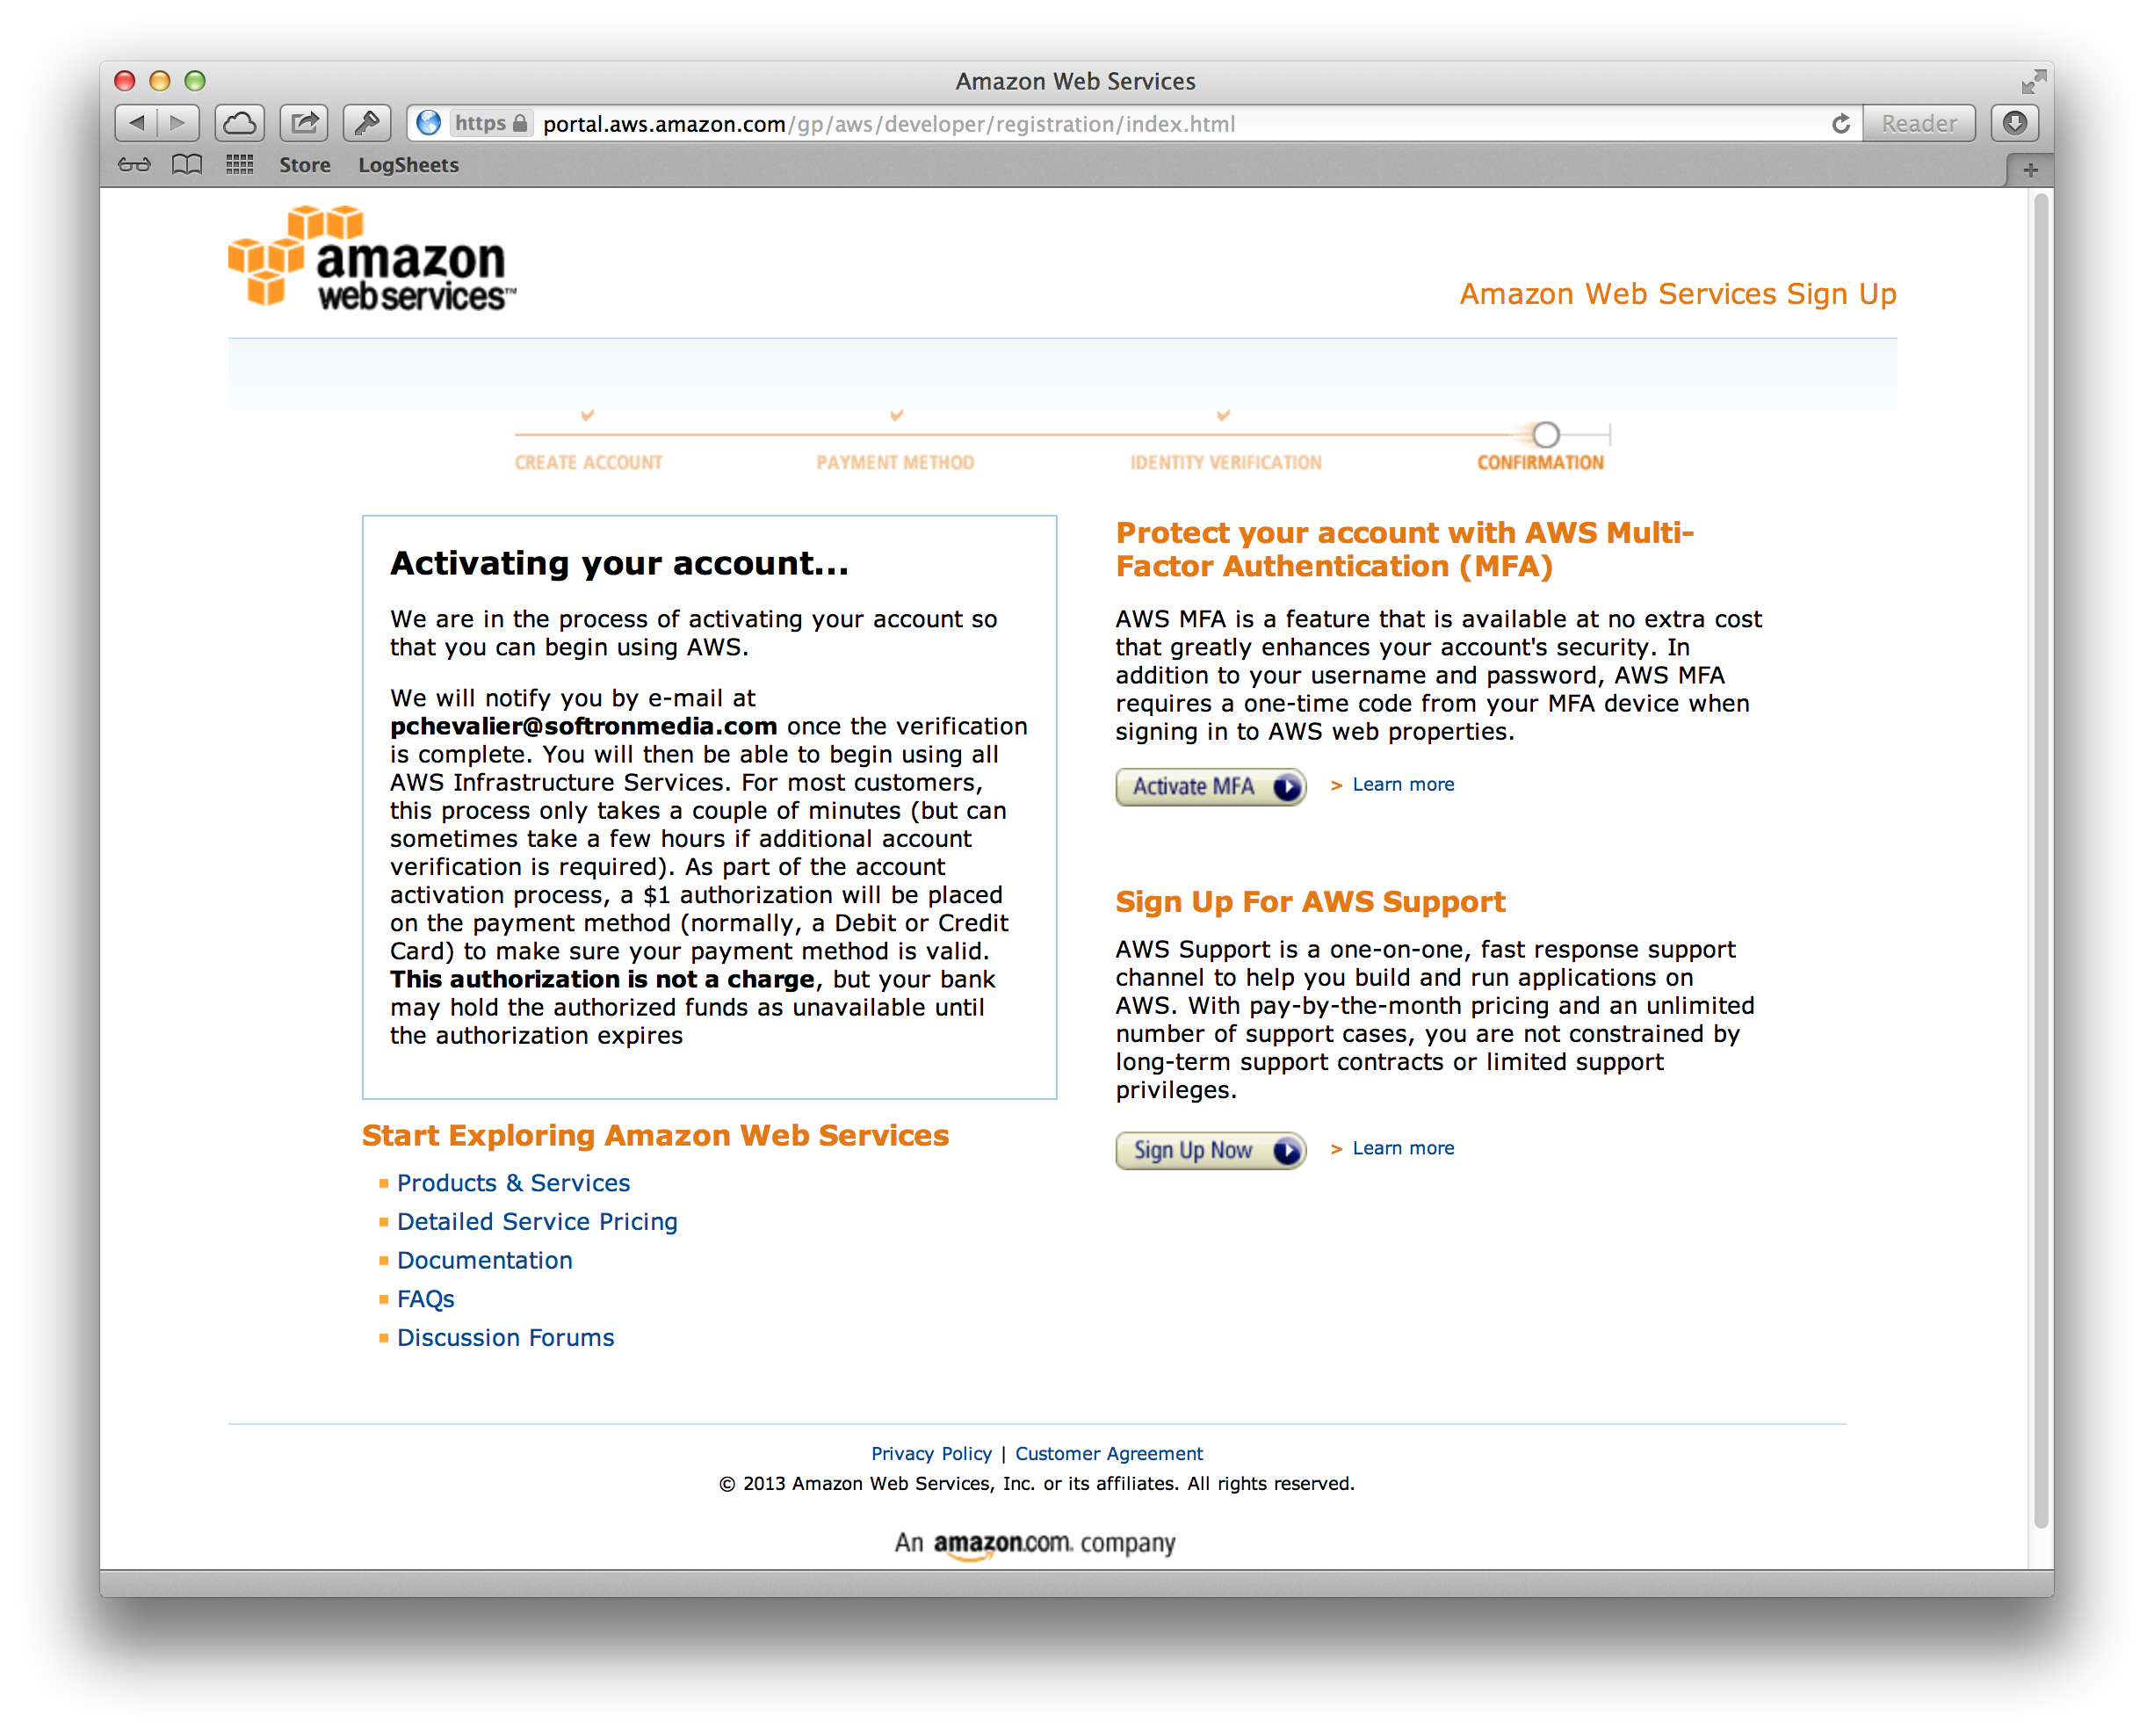 AmazonWebServices_08_ActivatingAccount.png